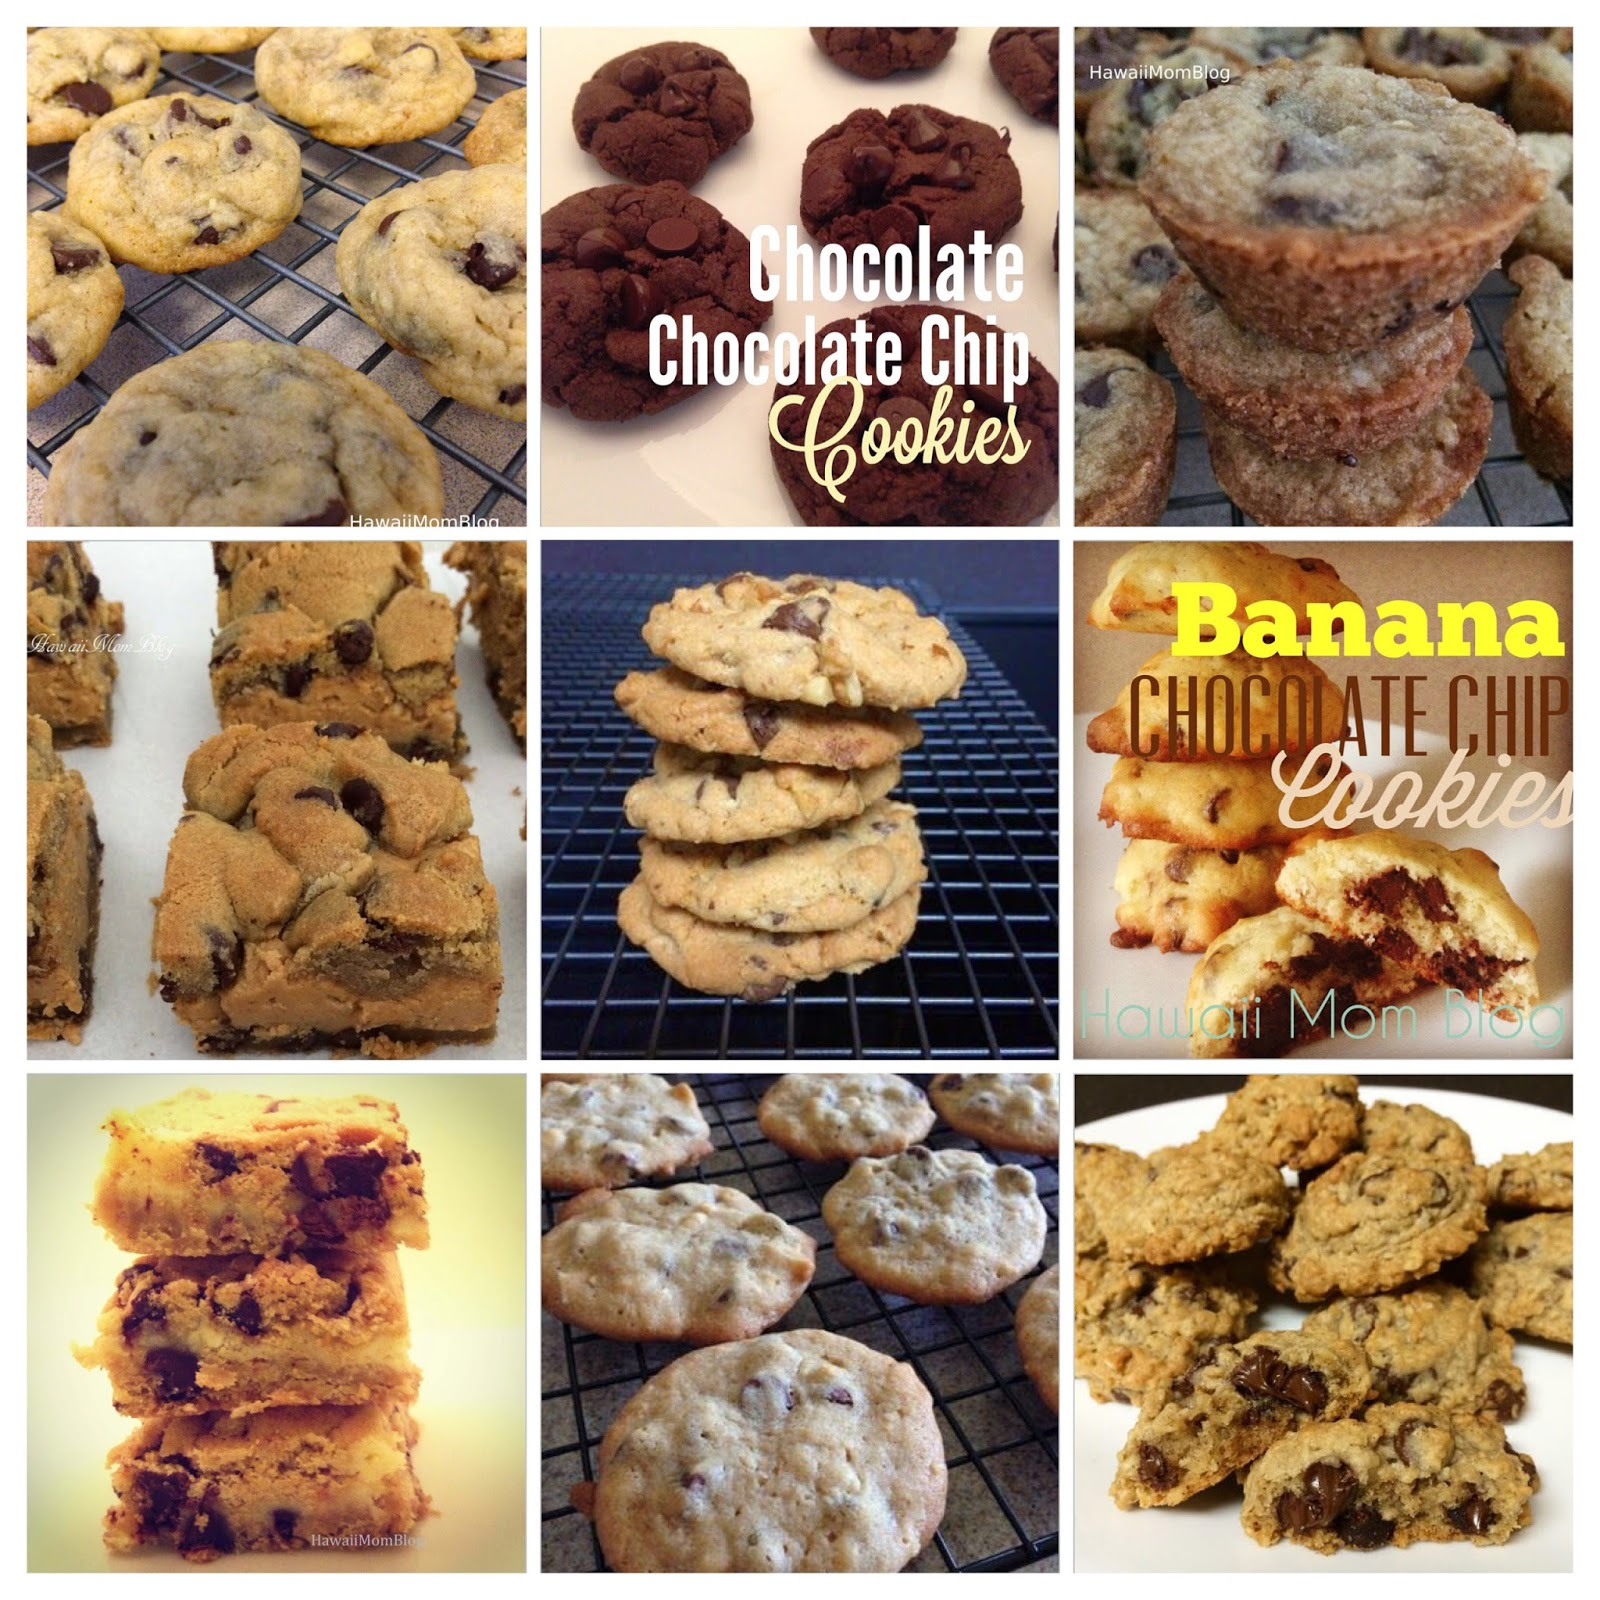 Hawaii Mom Blog: Chocolate Chip Cookie Recipes in Honor of ...